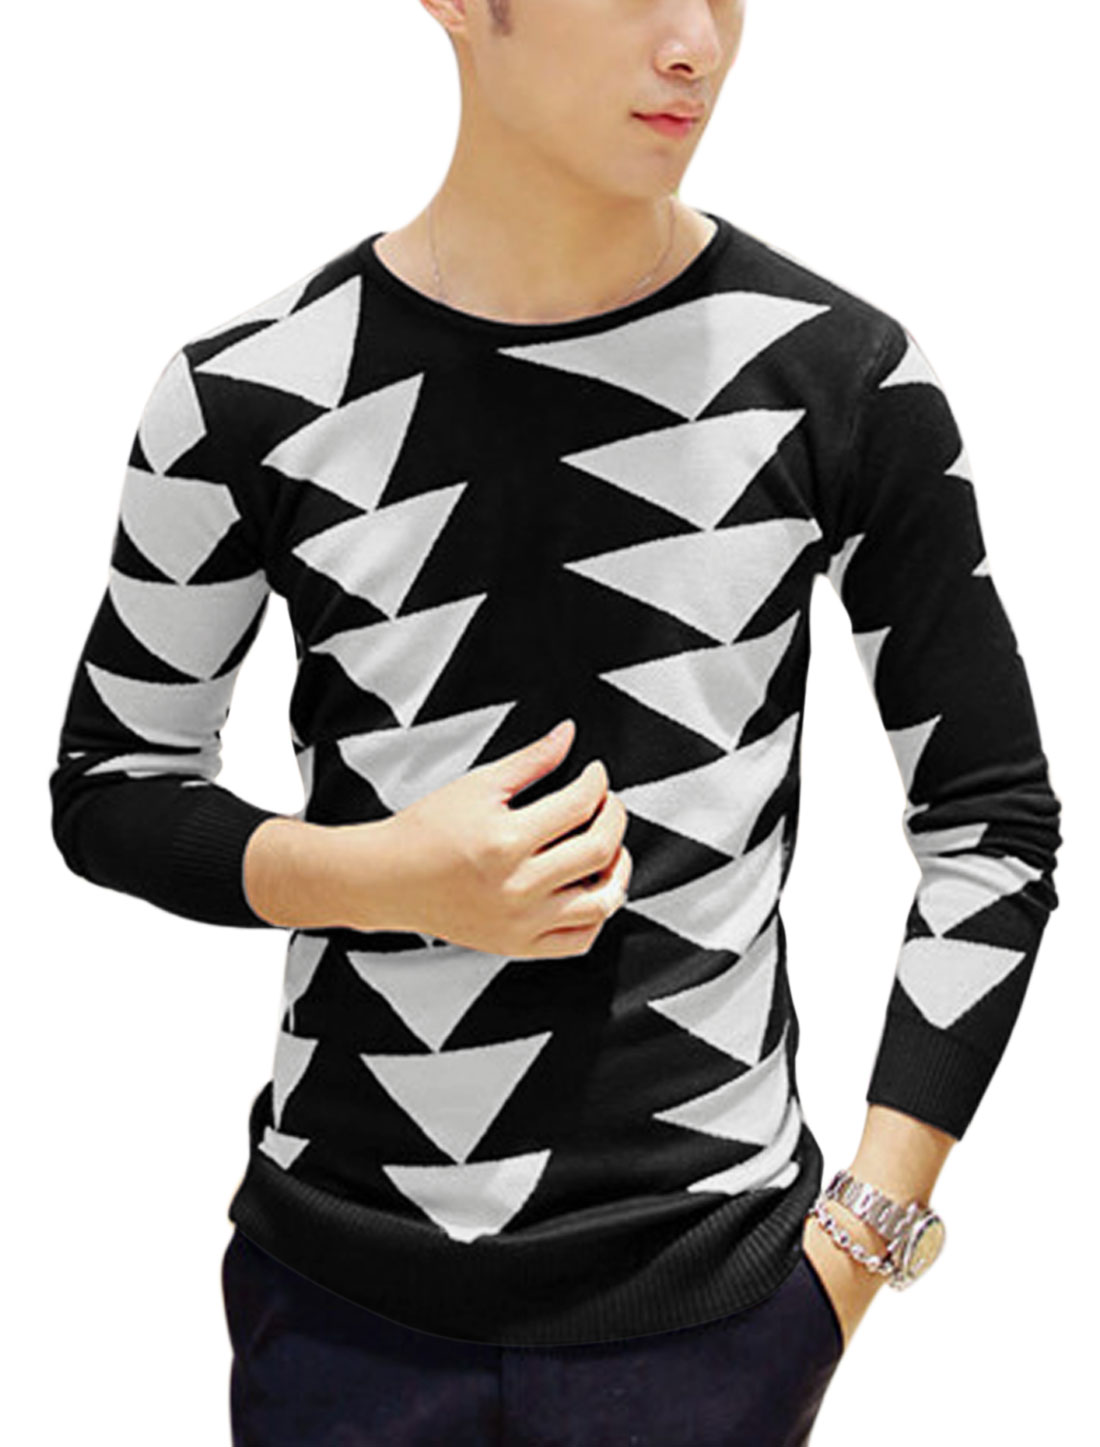 Man Black White Long Sleeves Pullover Round Neck Fashion Knit Shirt S